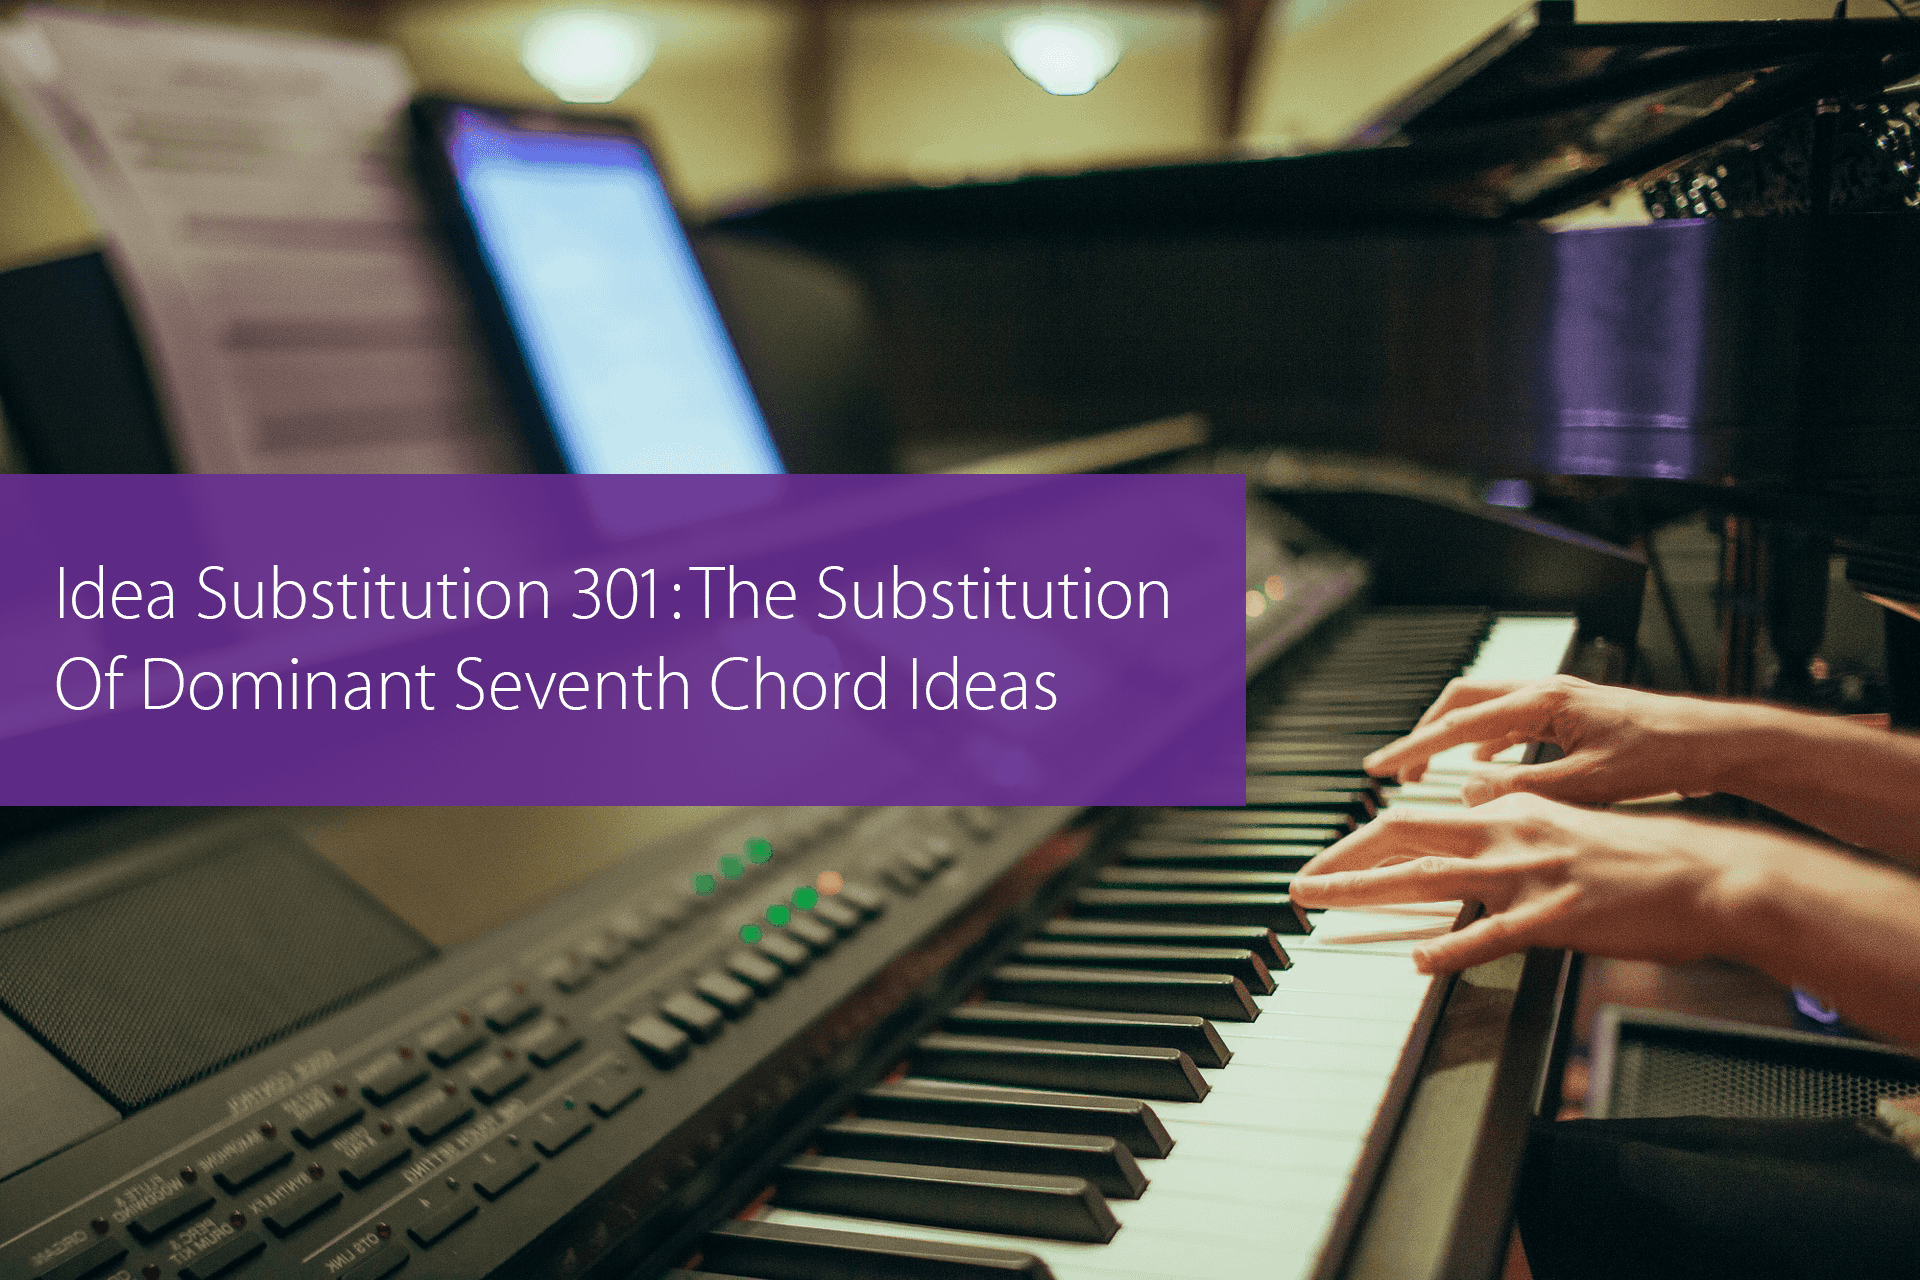 Thumbnail image for Idea Substitution 301: The Substitution Of Dominant Seventh Chord Ideas